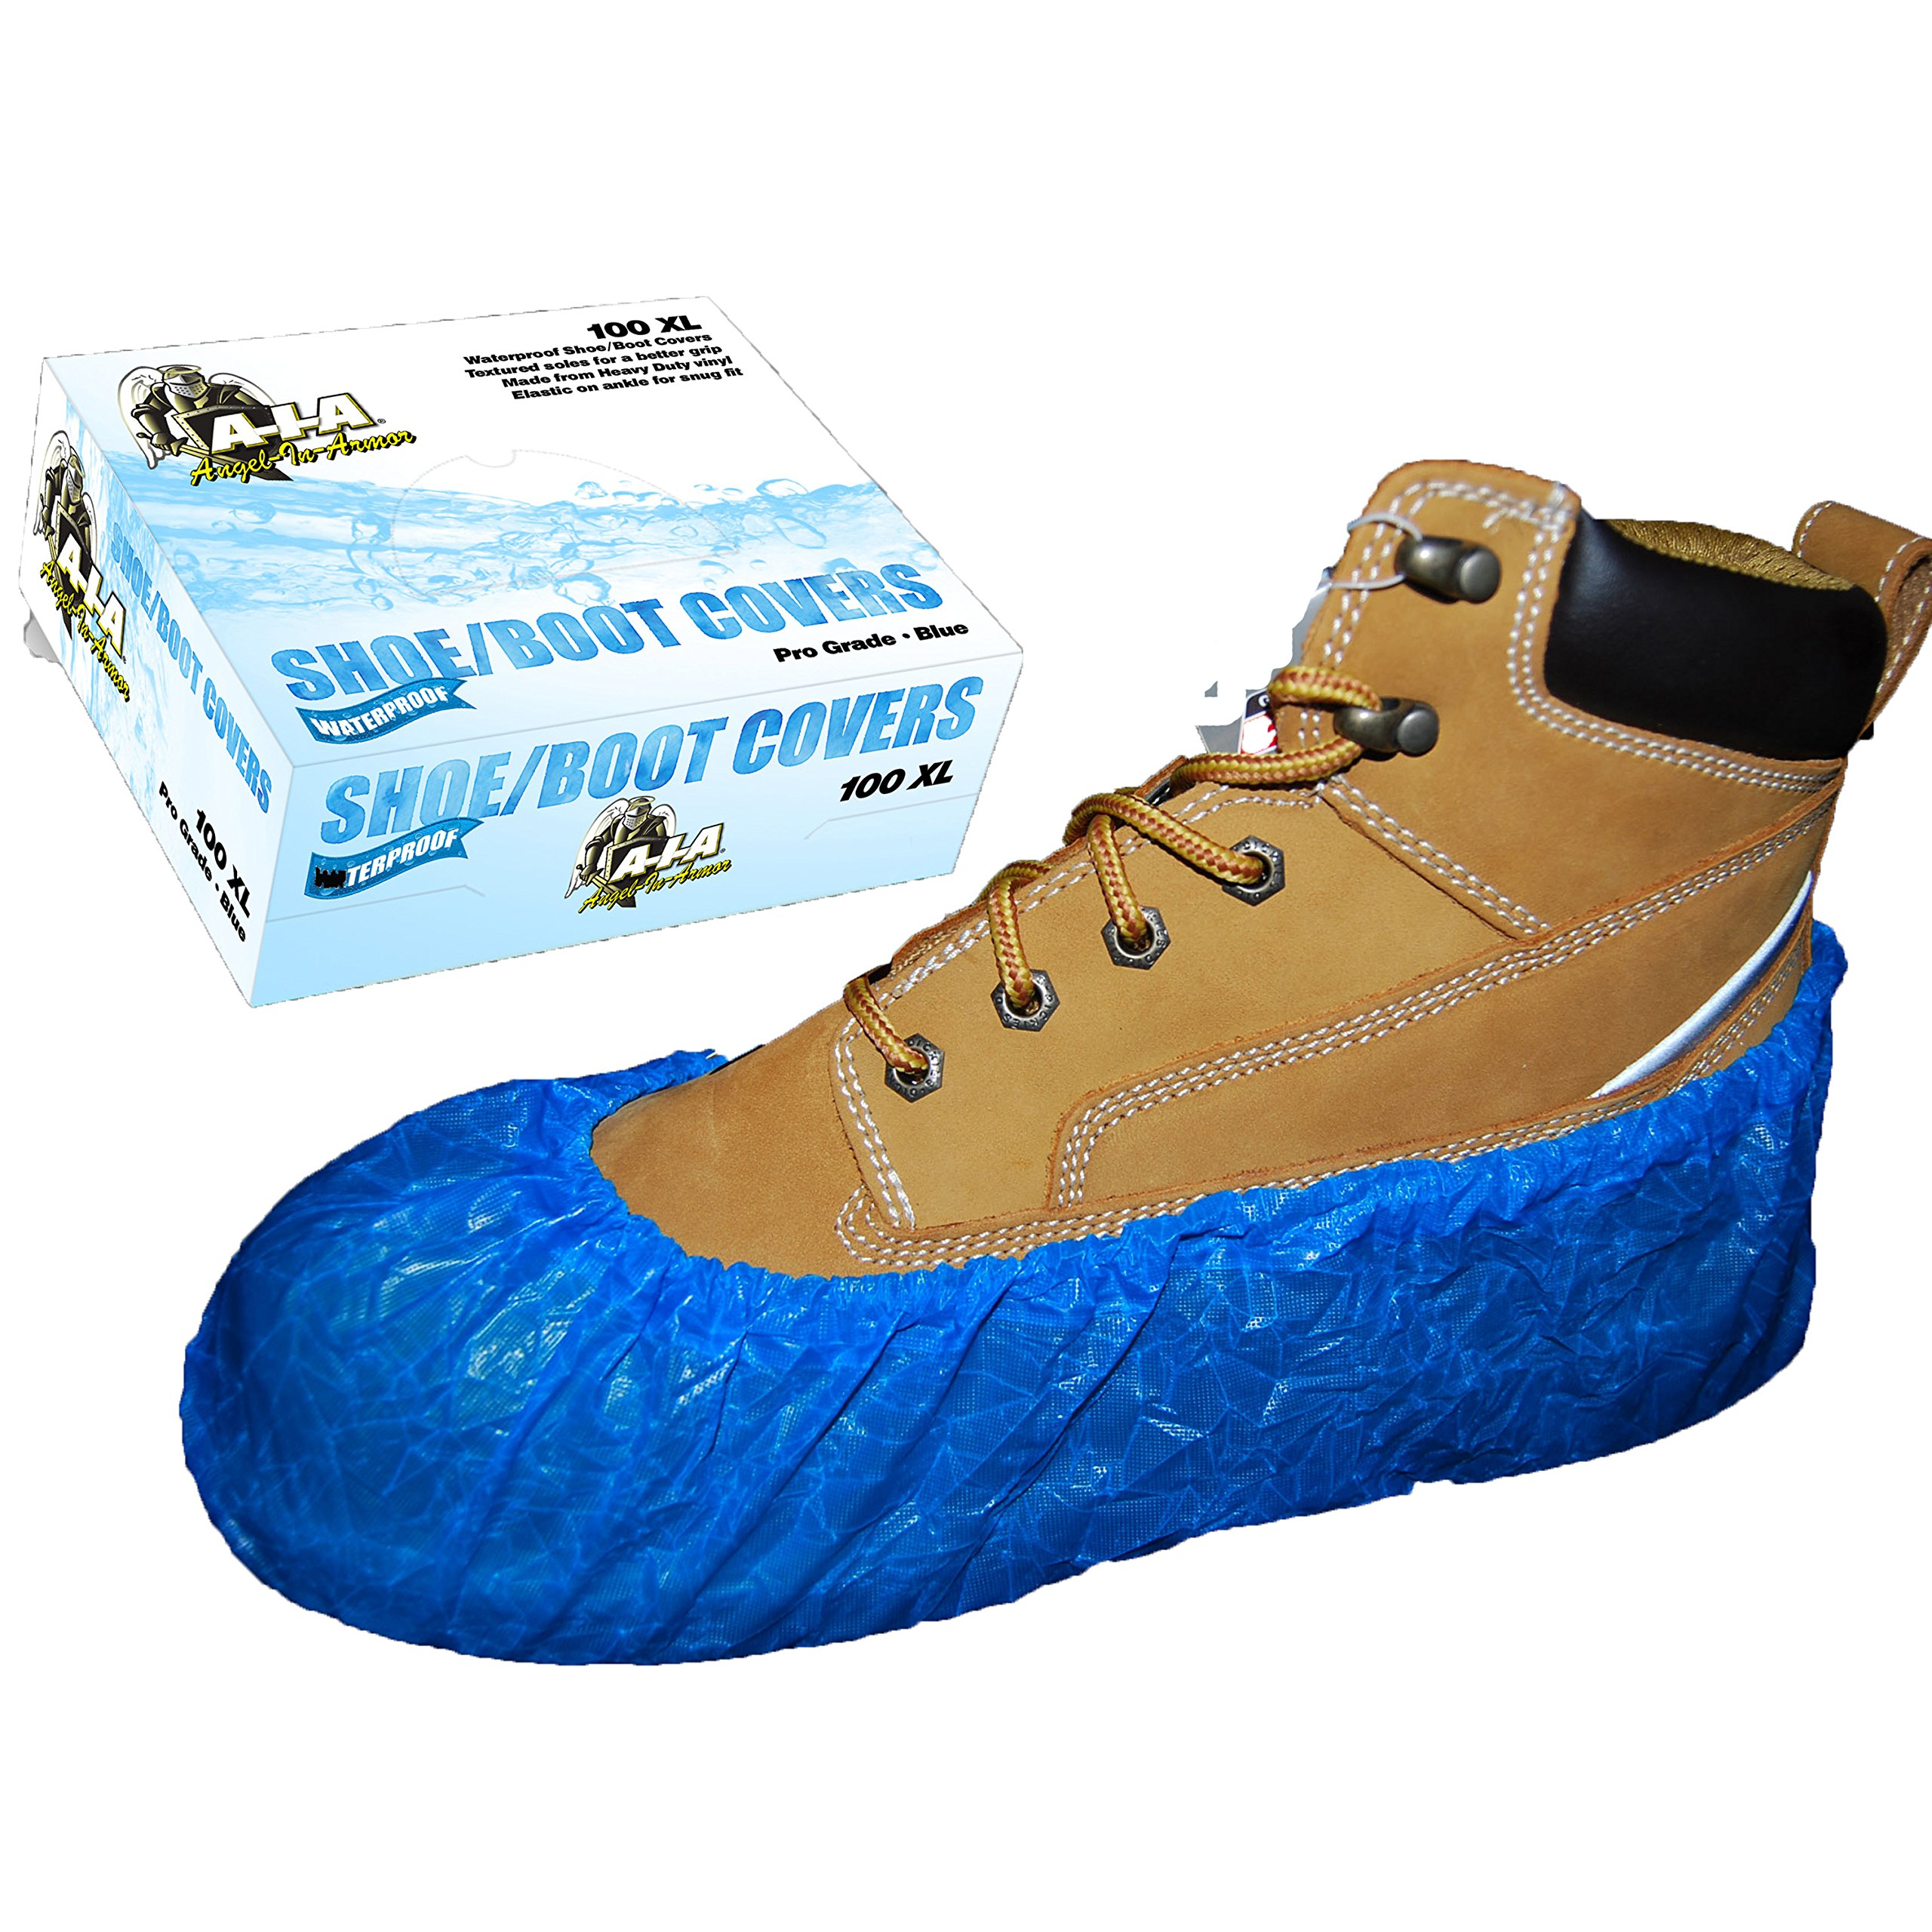 Waterproof Shoe Covers/Boot Covers/Blue / 100 / A-I-A Angel-In-Armor (2XL)